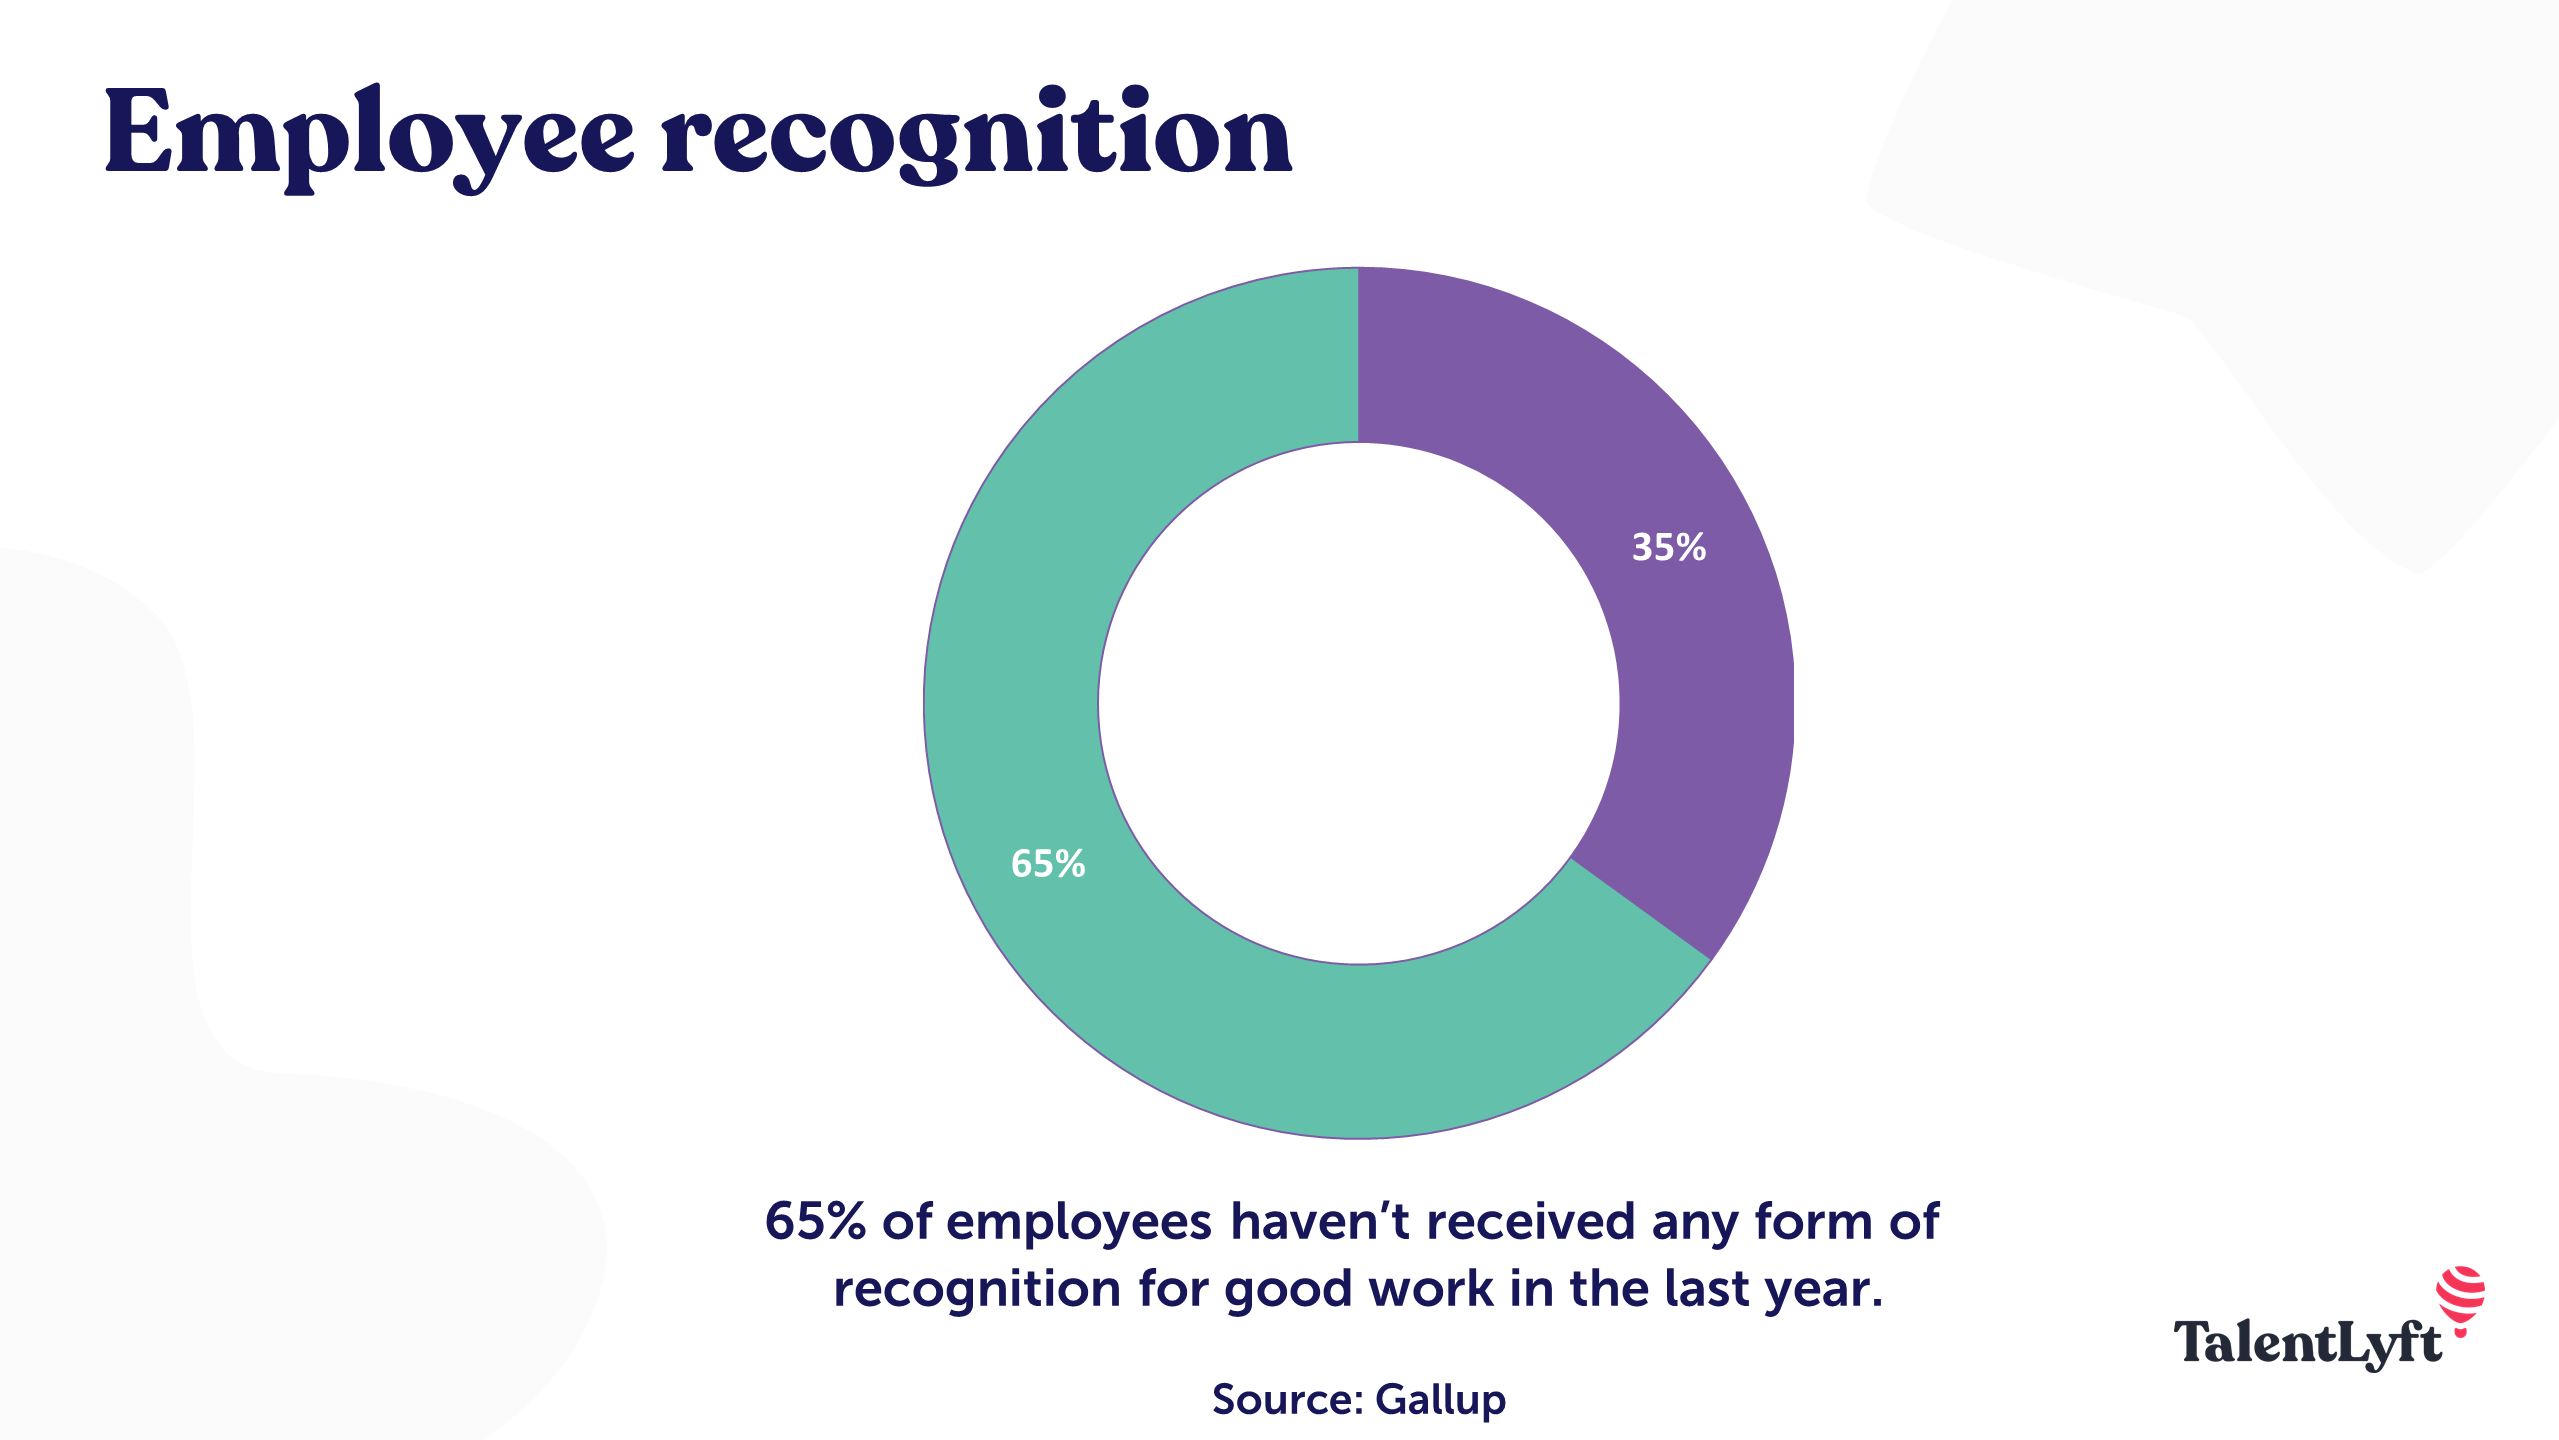 Employee recognition Gallup statistic